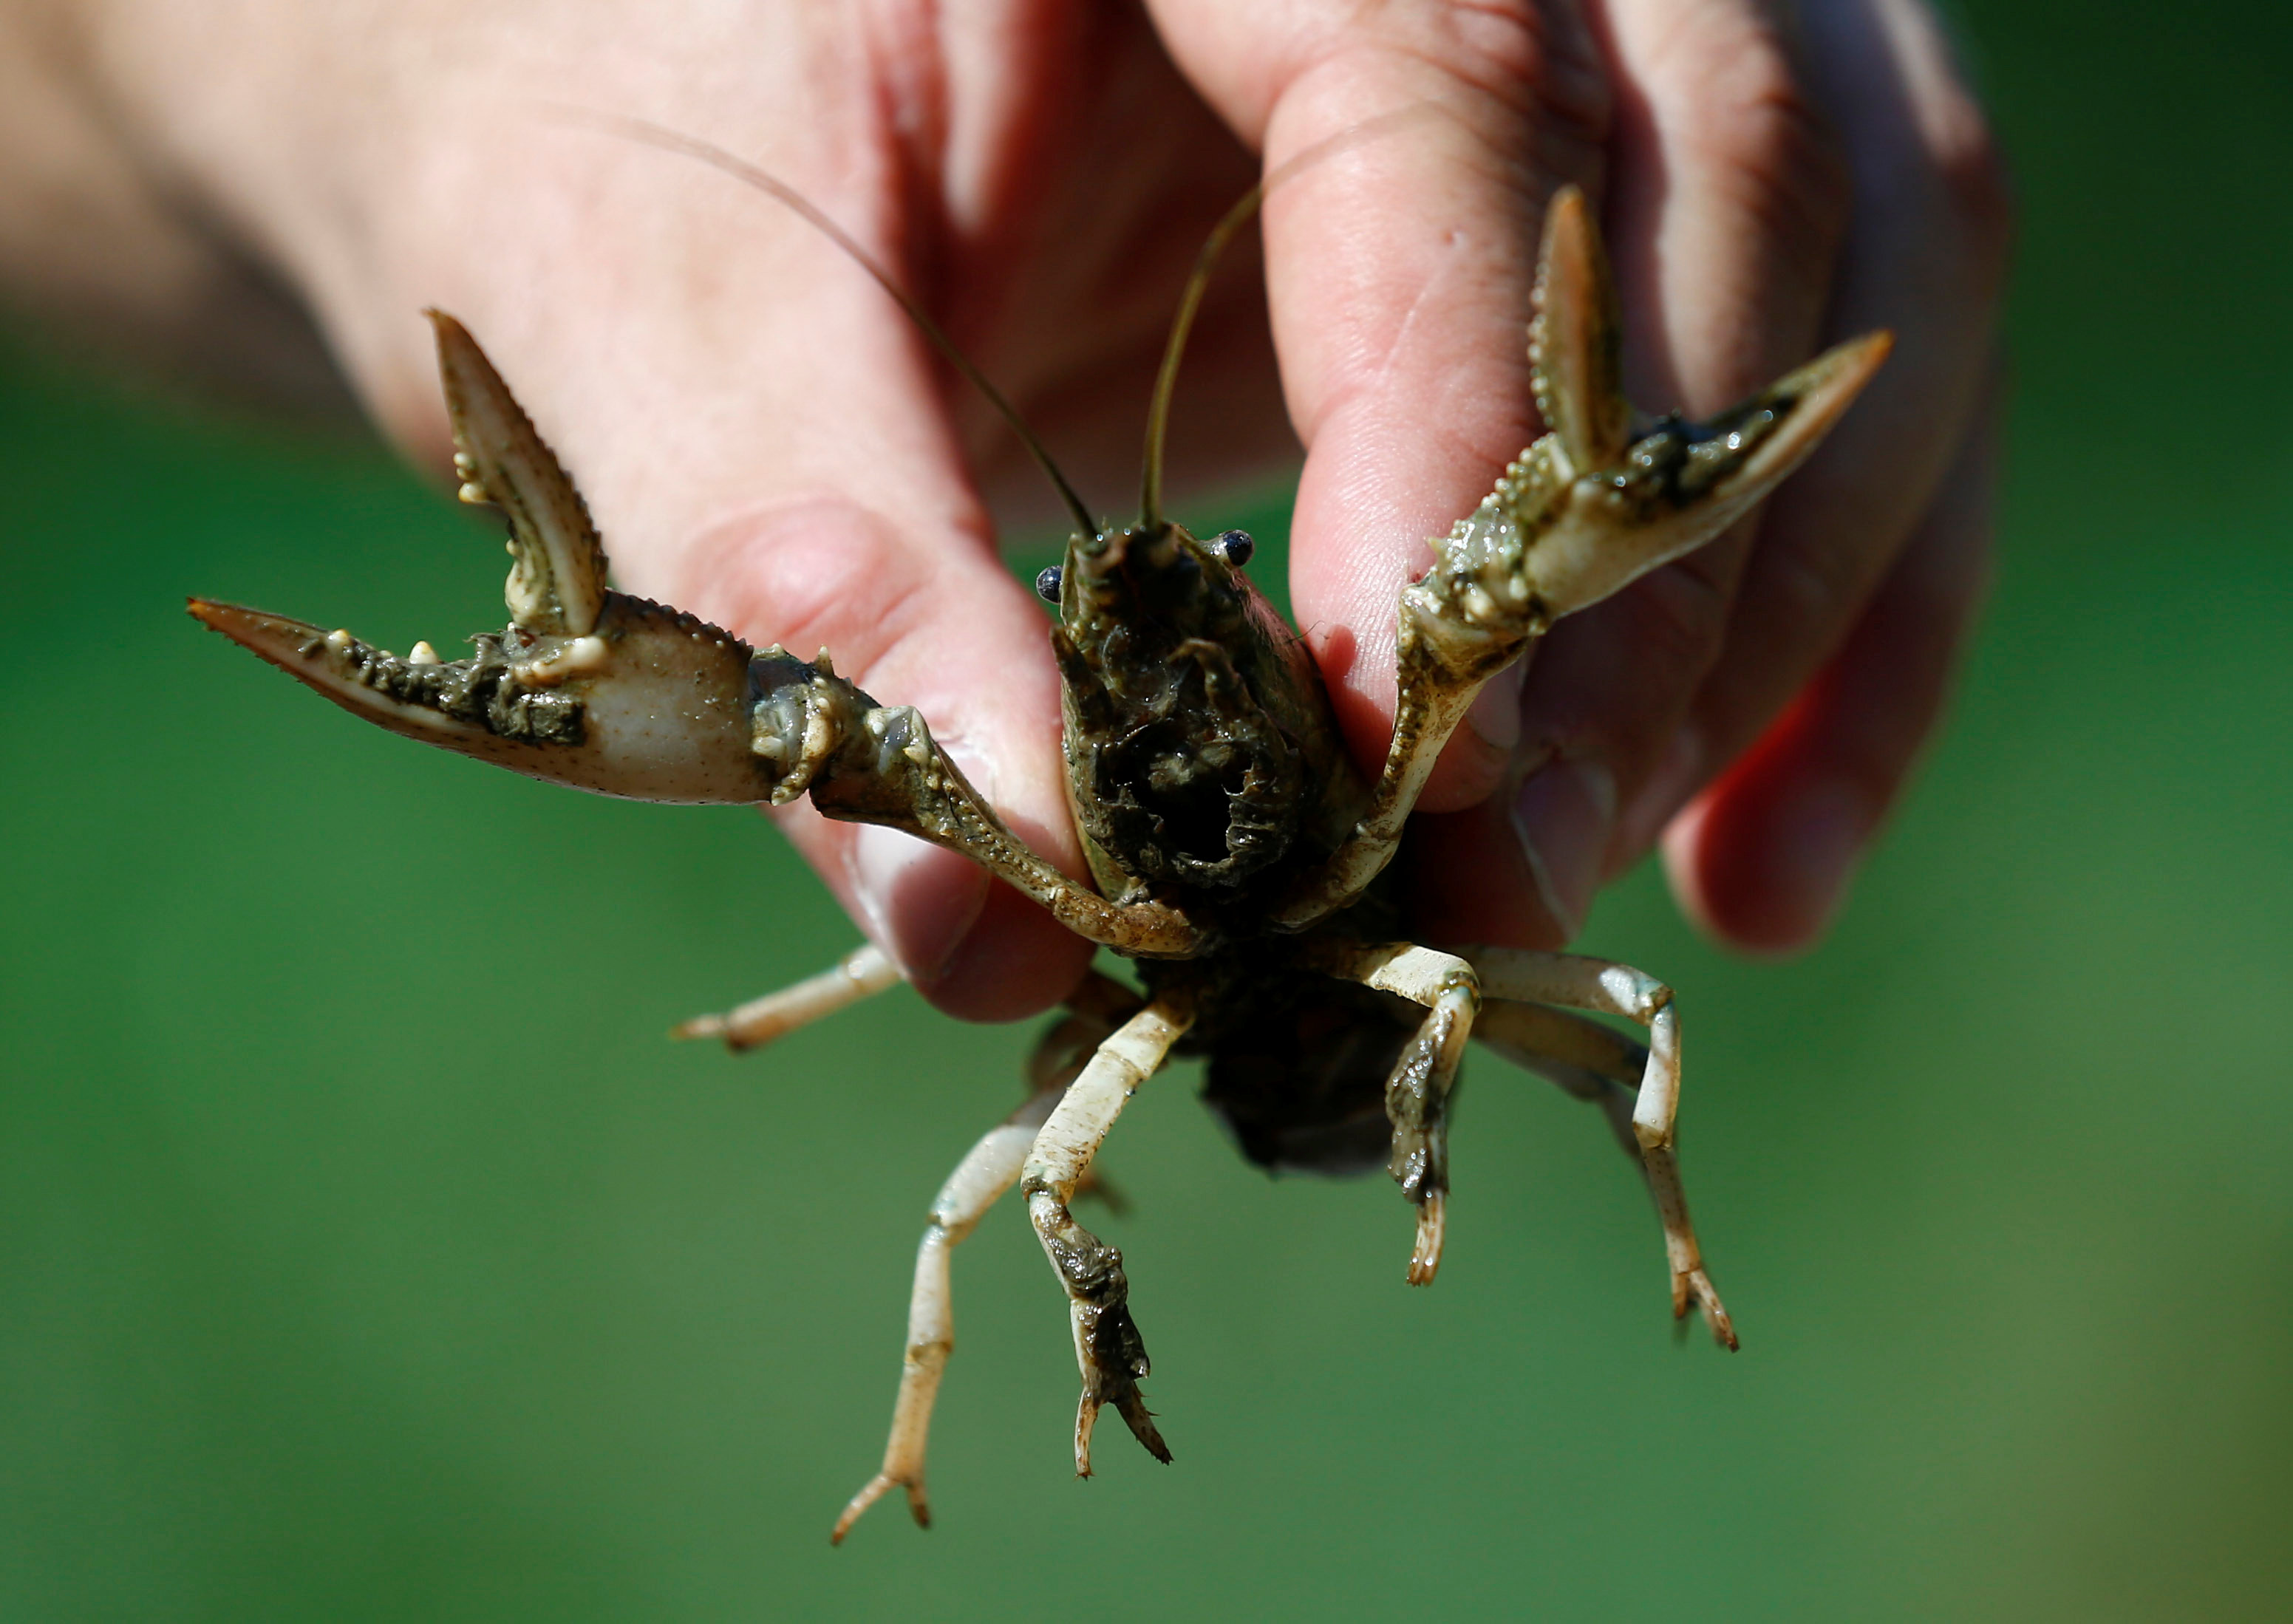 Herrmann of the Karlsruhe University of Education holds a calico crayfish (Orconectes immunis) in Rheinstetten